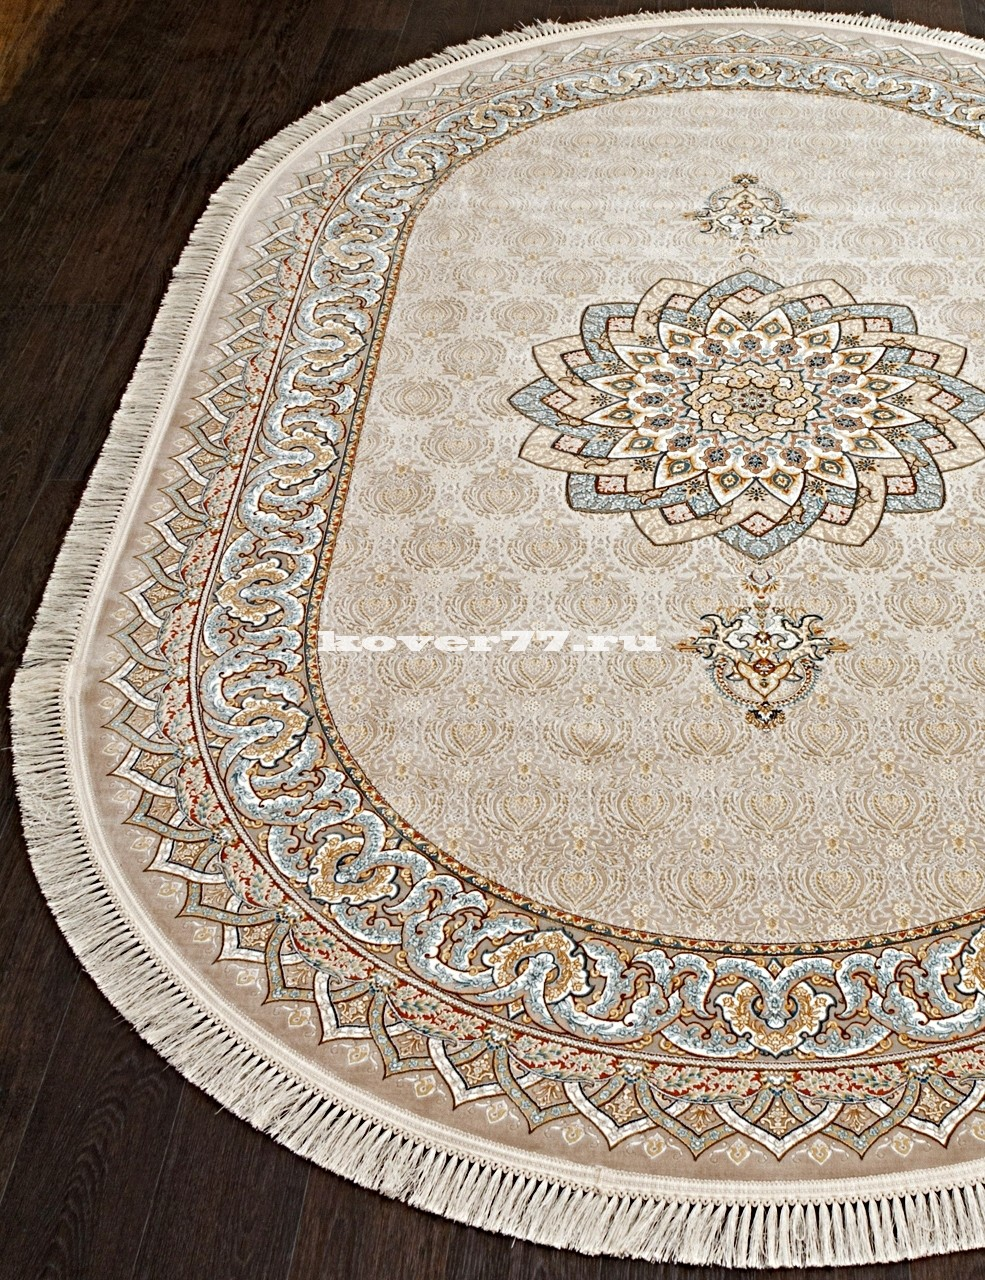 FARSI 1200 212 - CREAM OVAL